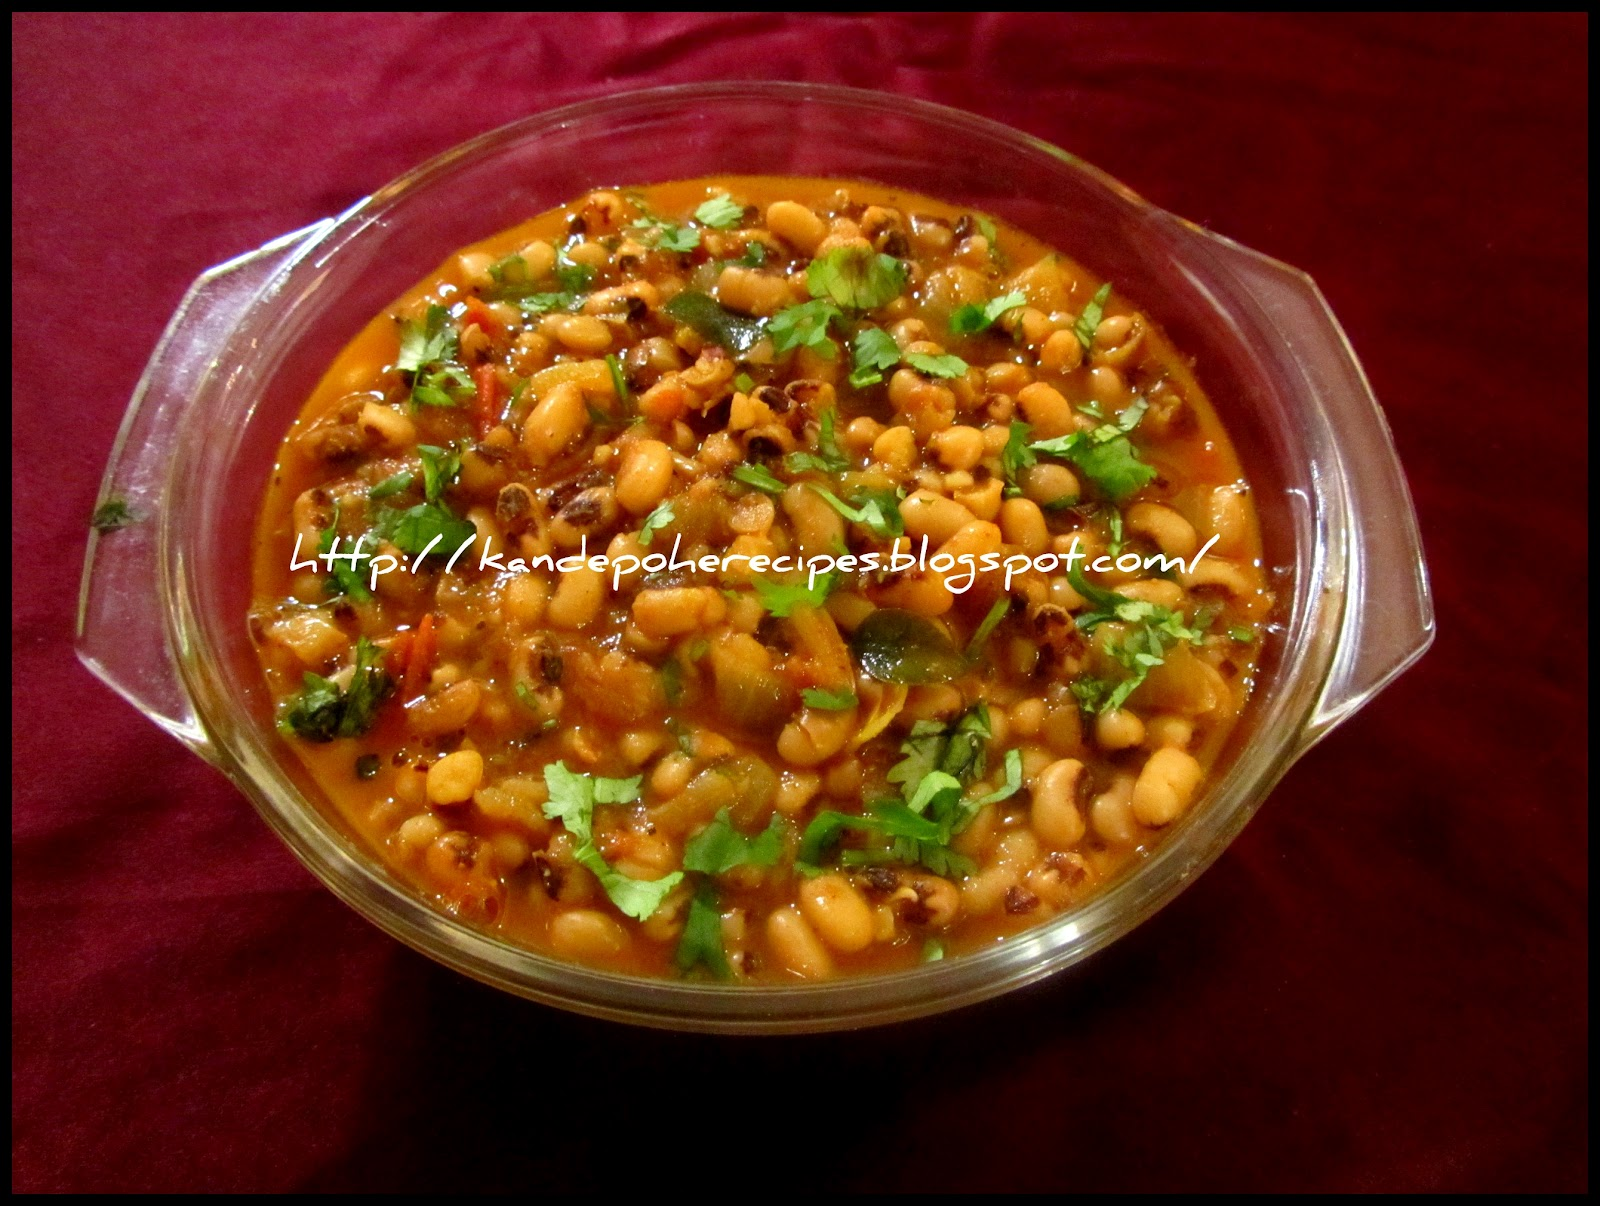 Chavli chi usal / Black eyed beans curry | Spicy-Aroma